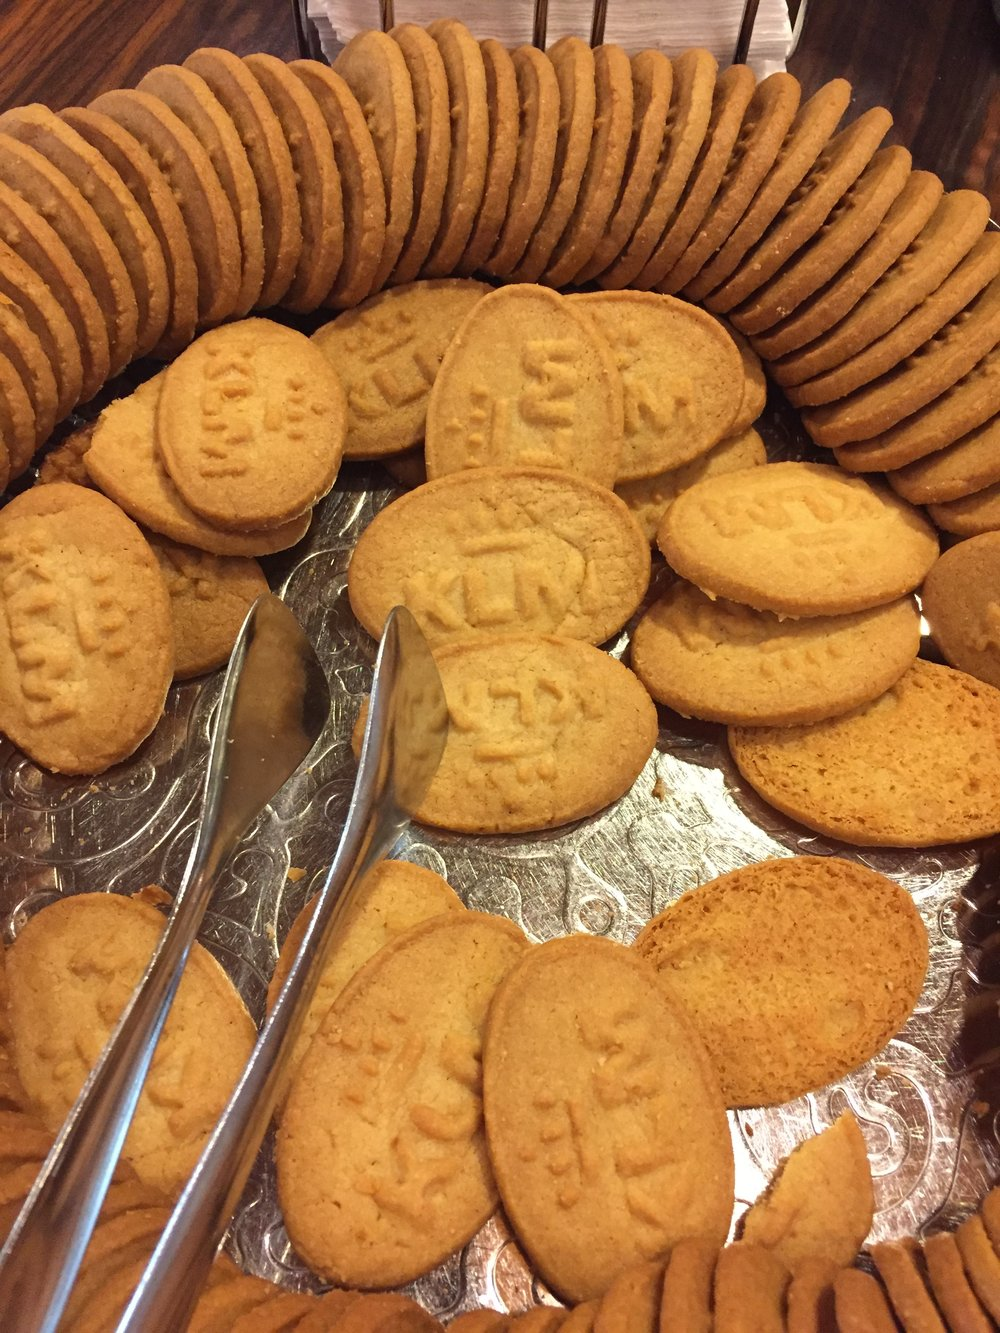 Some KLM-branded Dutch butter cookies - tasty!